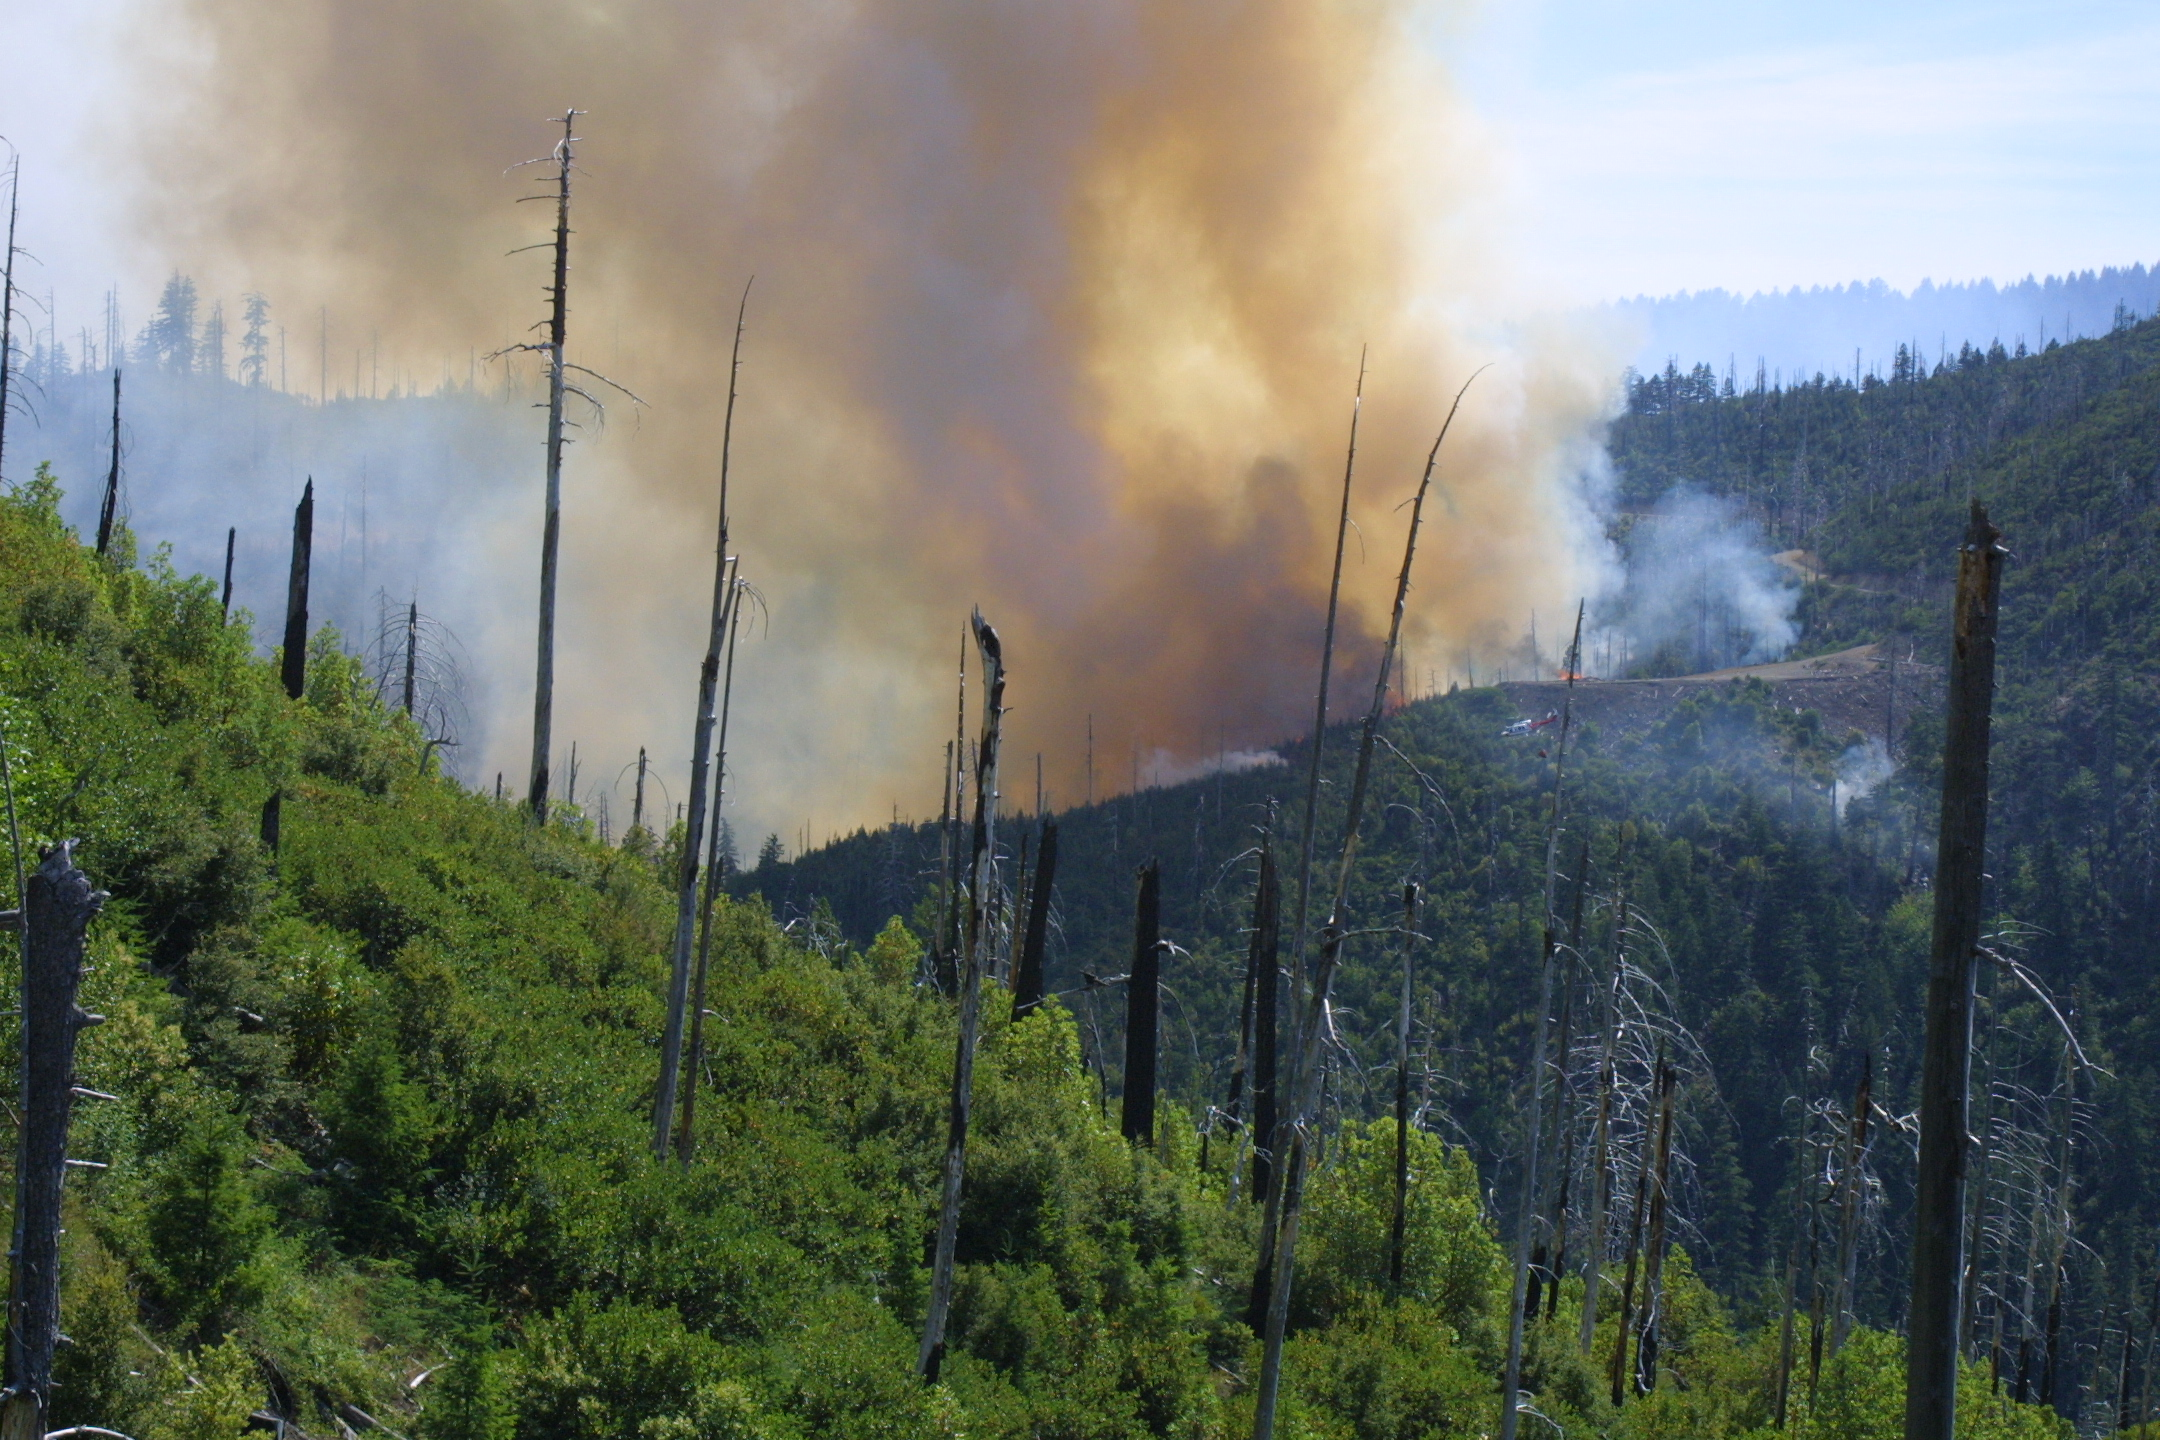 New research has found that global warming will increase the frequency of summer droughts and wildfires in the forested Klamath region of the Pacific Northwest.